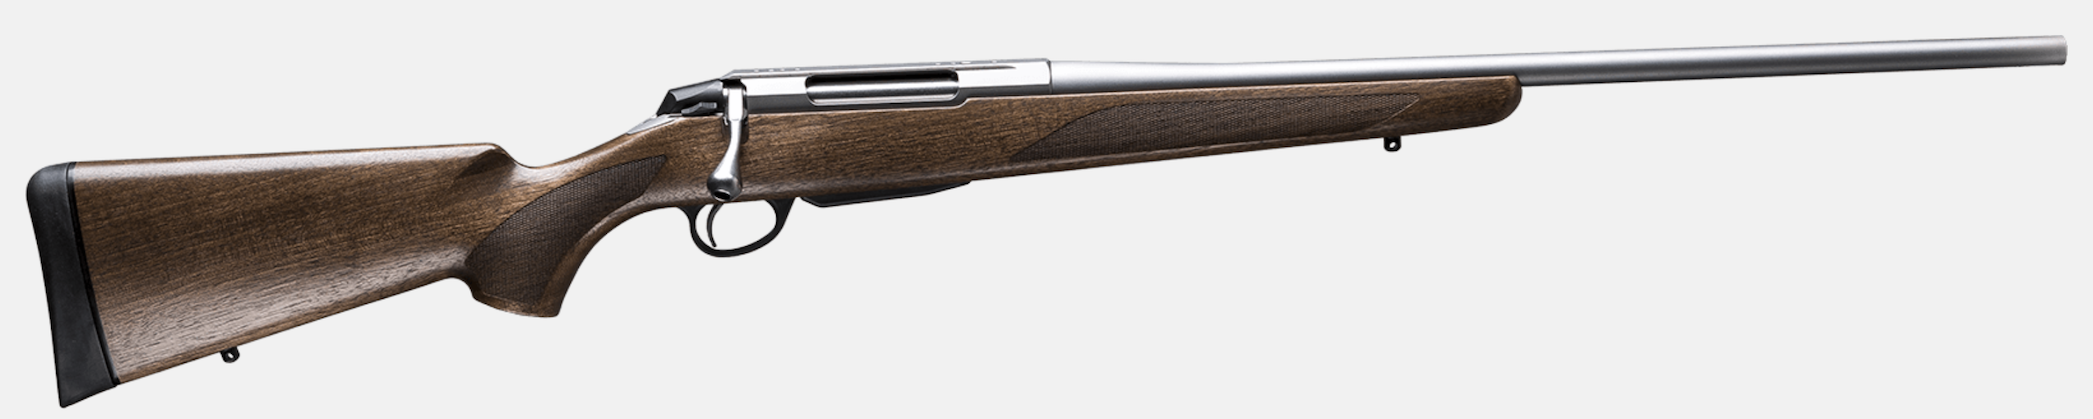 Anybody get anything good that's firearm related today?-tikka_t3x_hunter_stainless.png